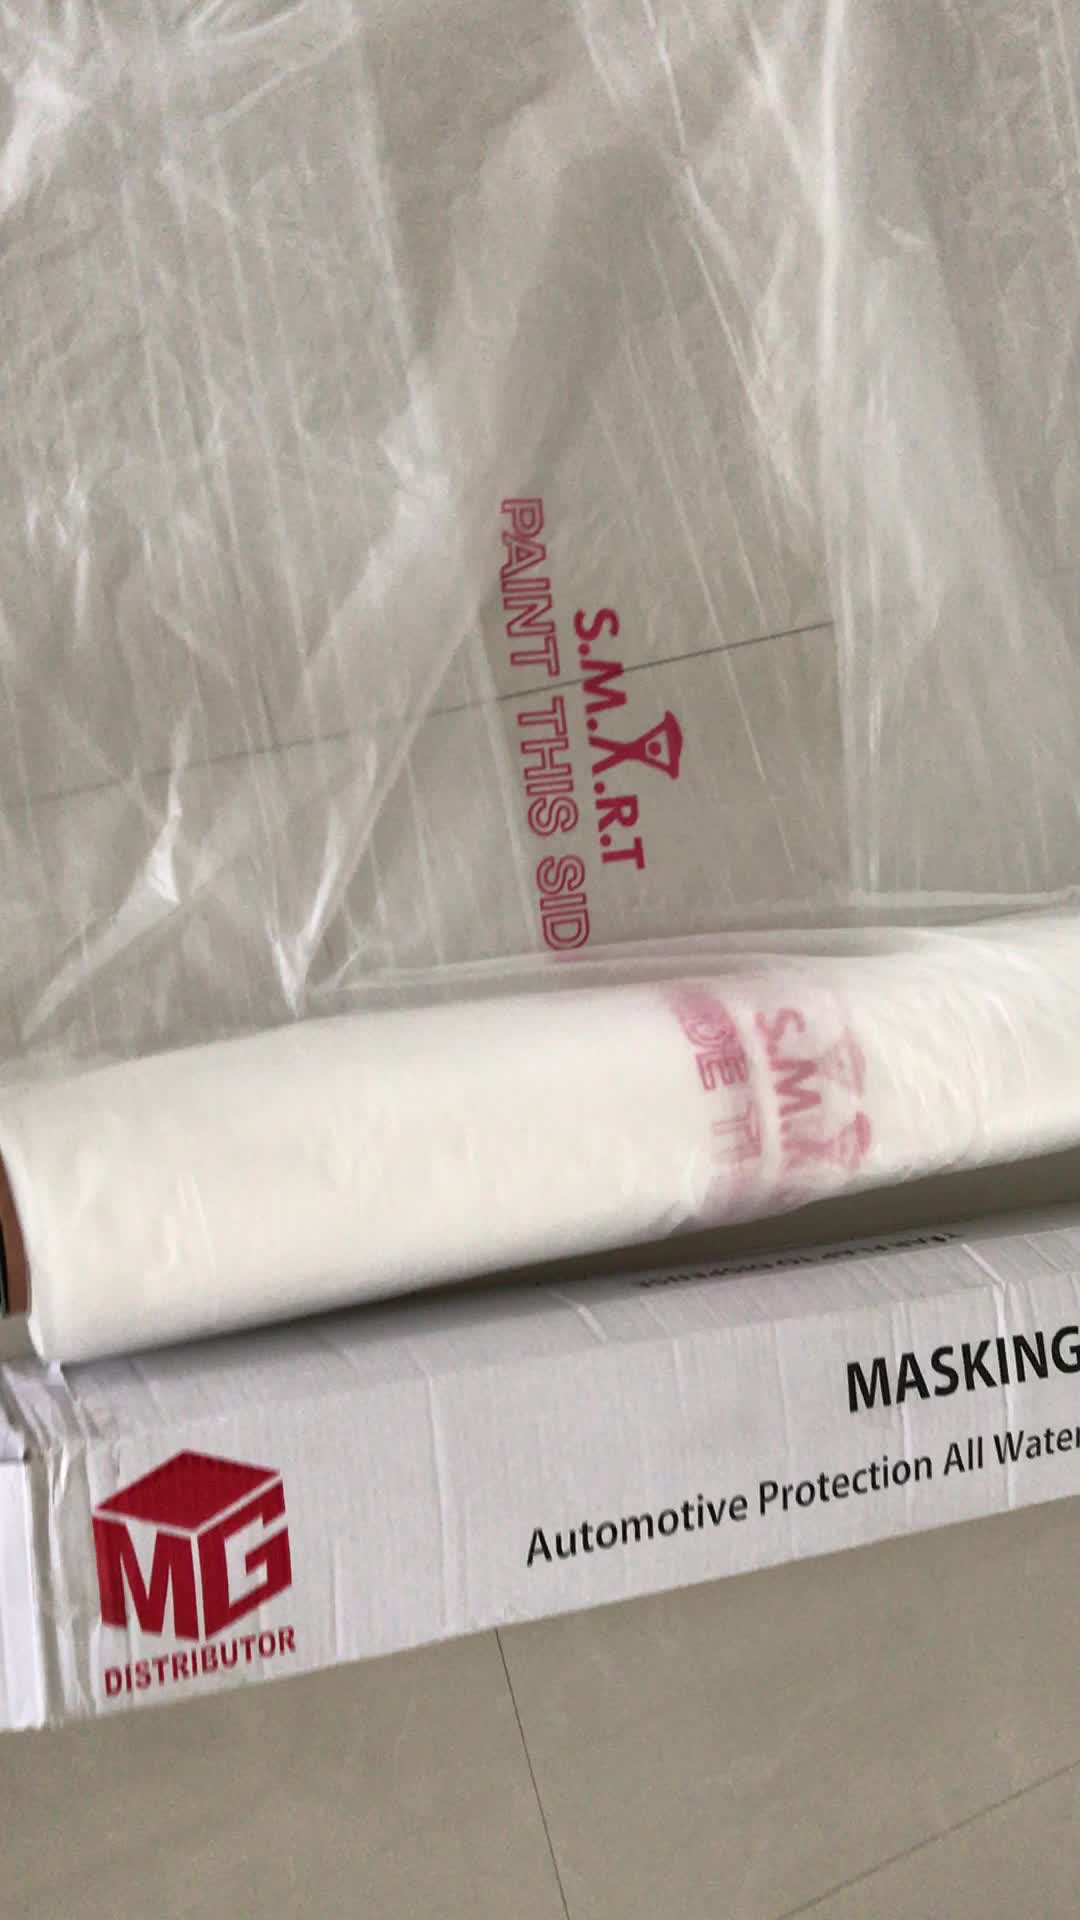 5m corona treated spray masking film roll for use in painting